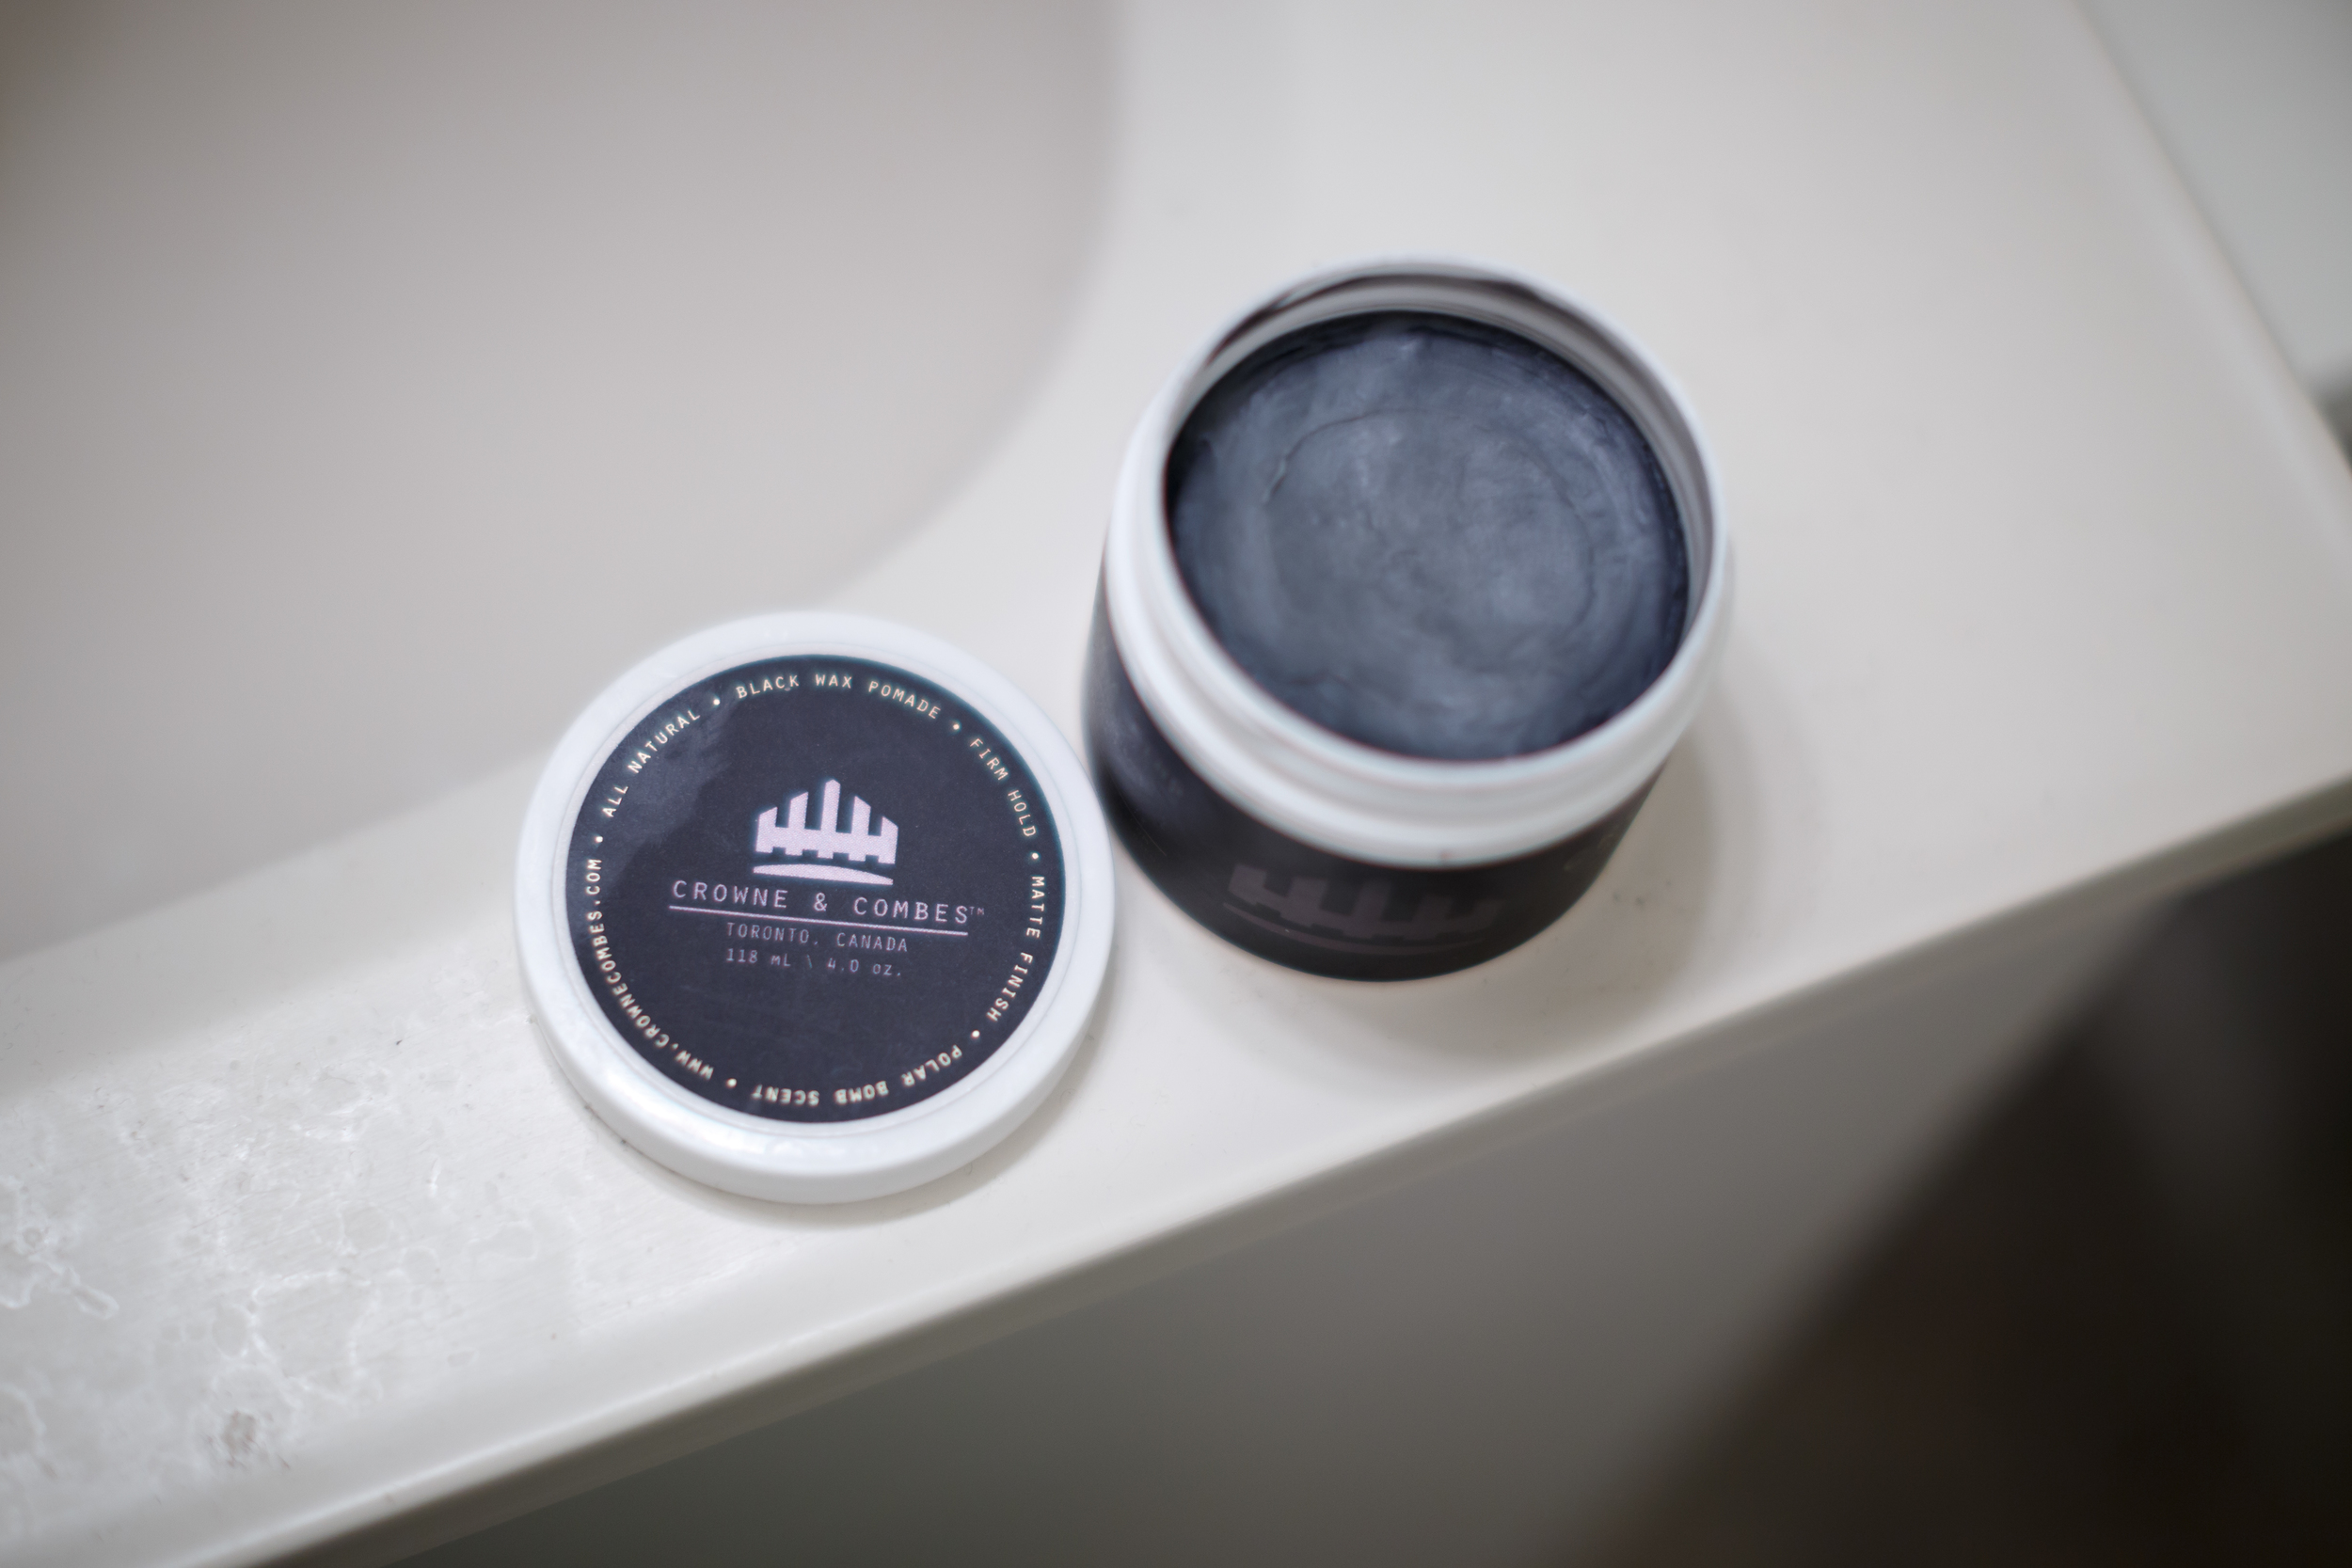 Crownes & Combes Black Wax Pomade Hair Hairstyle Hairstyling Pomp Pompadour ThePomp The Jar Can Tin Container Matte Finish Strong Medium Heavy Firm Hold Opened Inside Product Gray